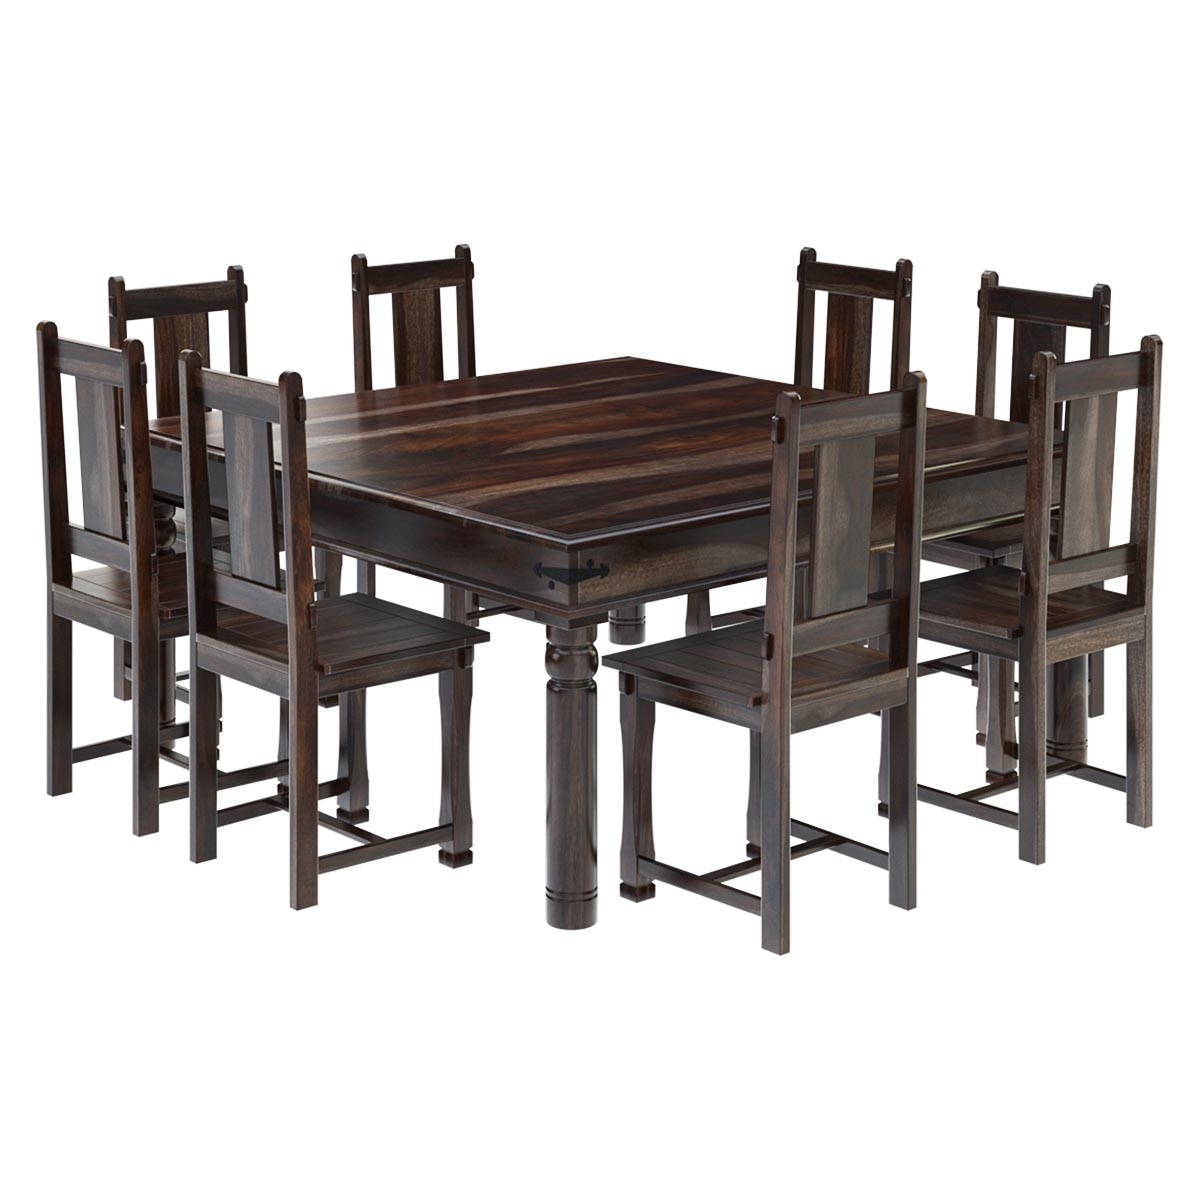 Most Recent Rustic Solid Wood Large Square Dining Table Chair Set, 8 Chair In Solid Oak Dining Tables And 8 Chairs (View 8 of 25)